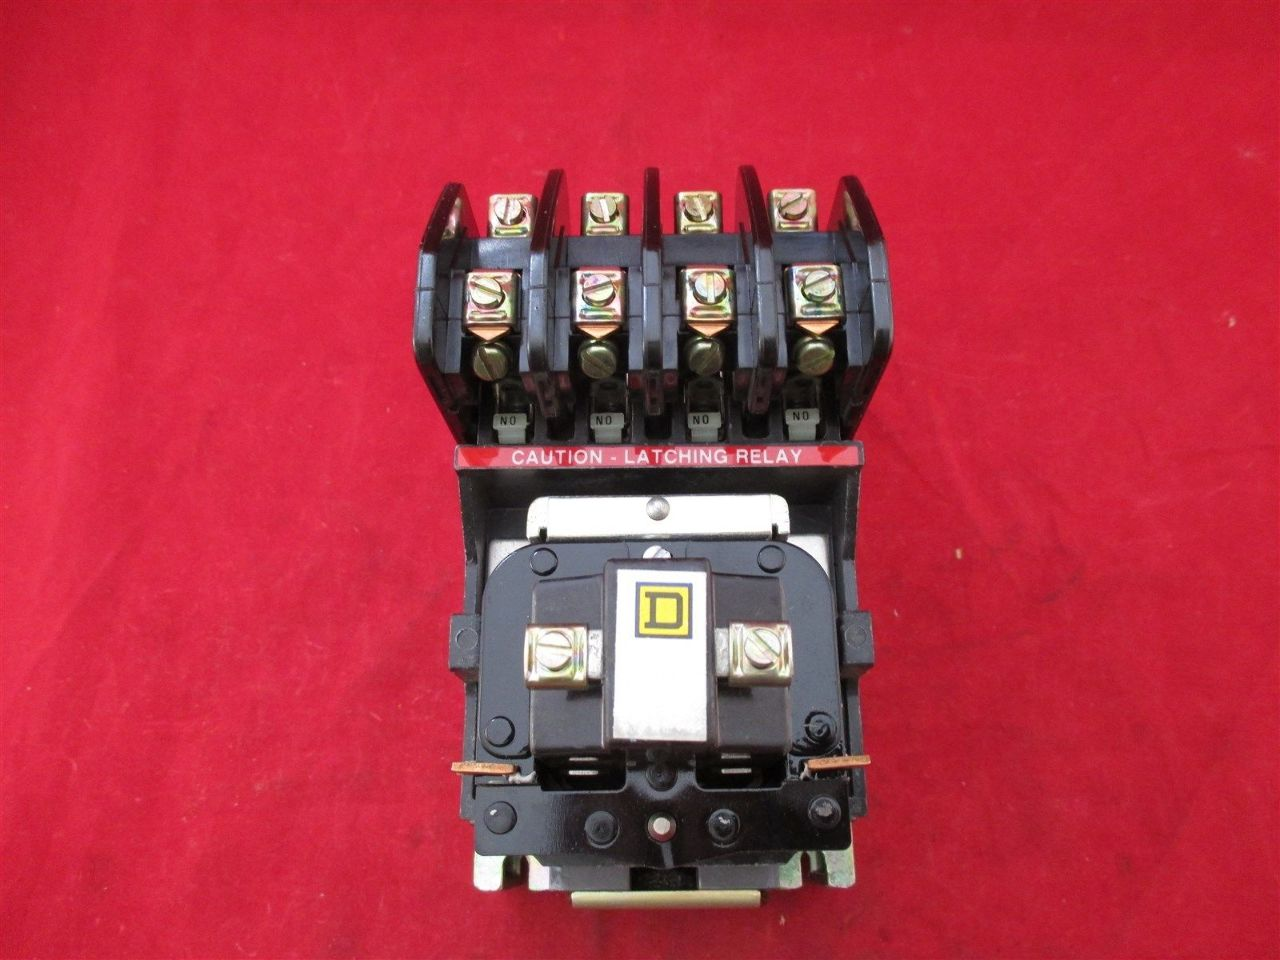 Square D 8501 HLO 40 Relay Process Industrial Surplus #AD1E32